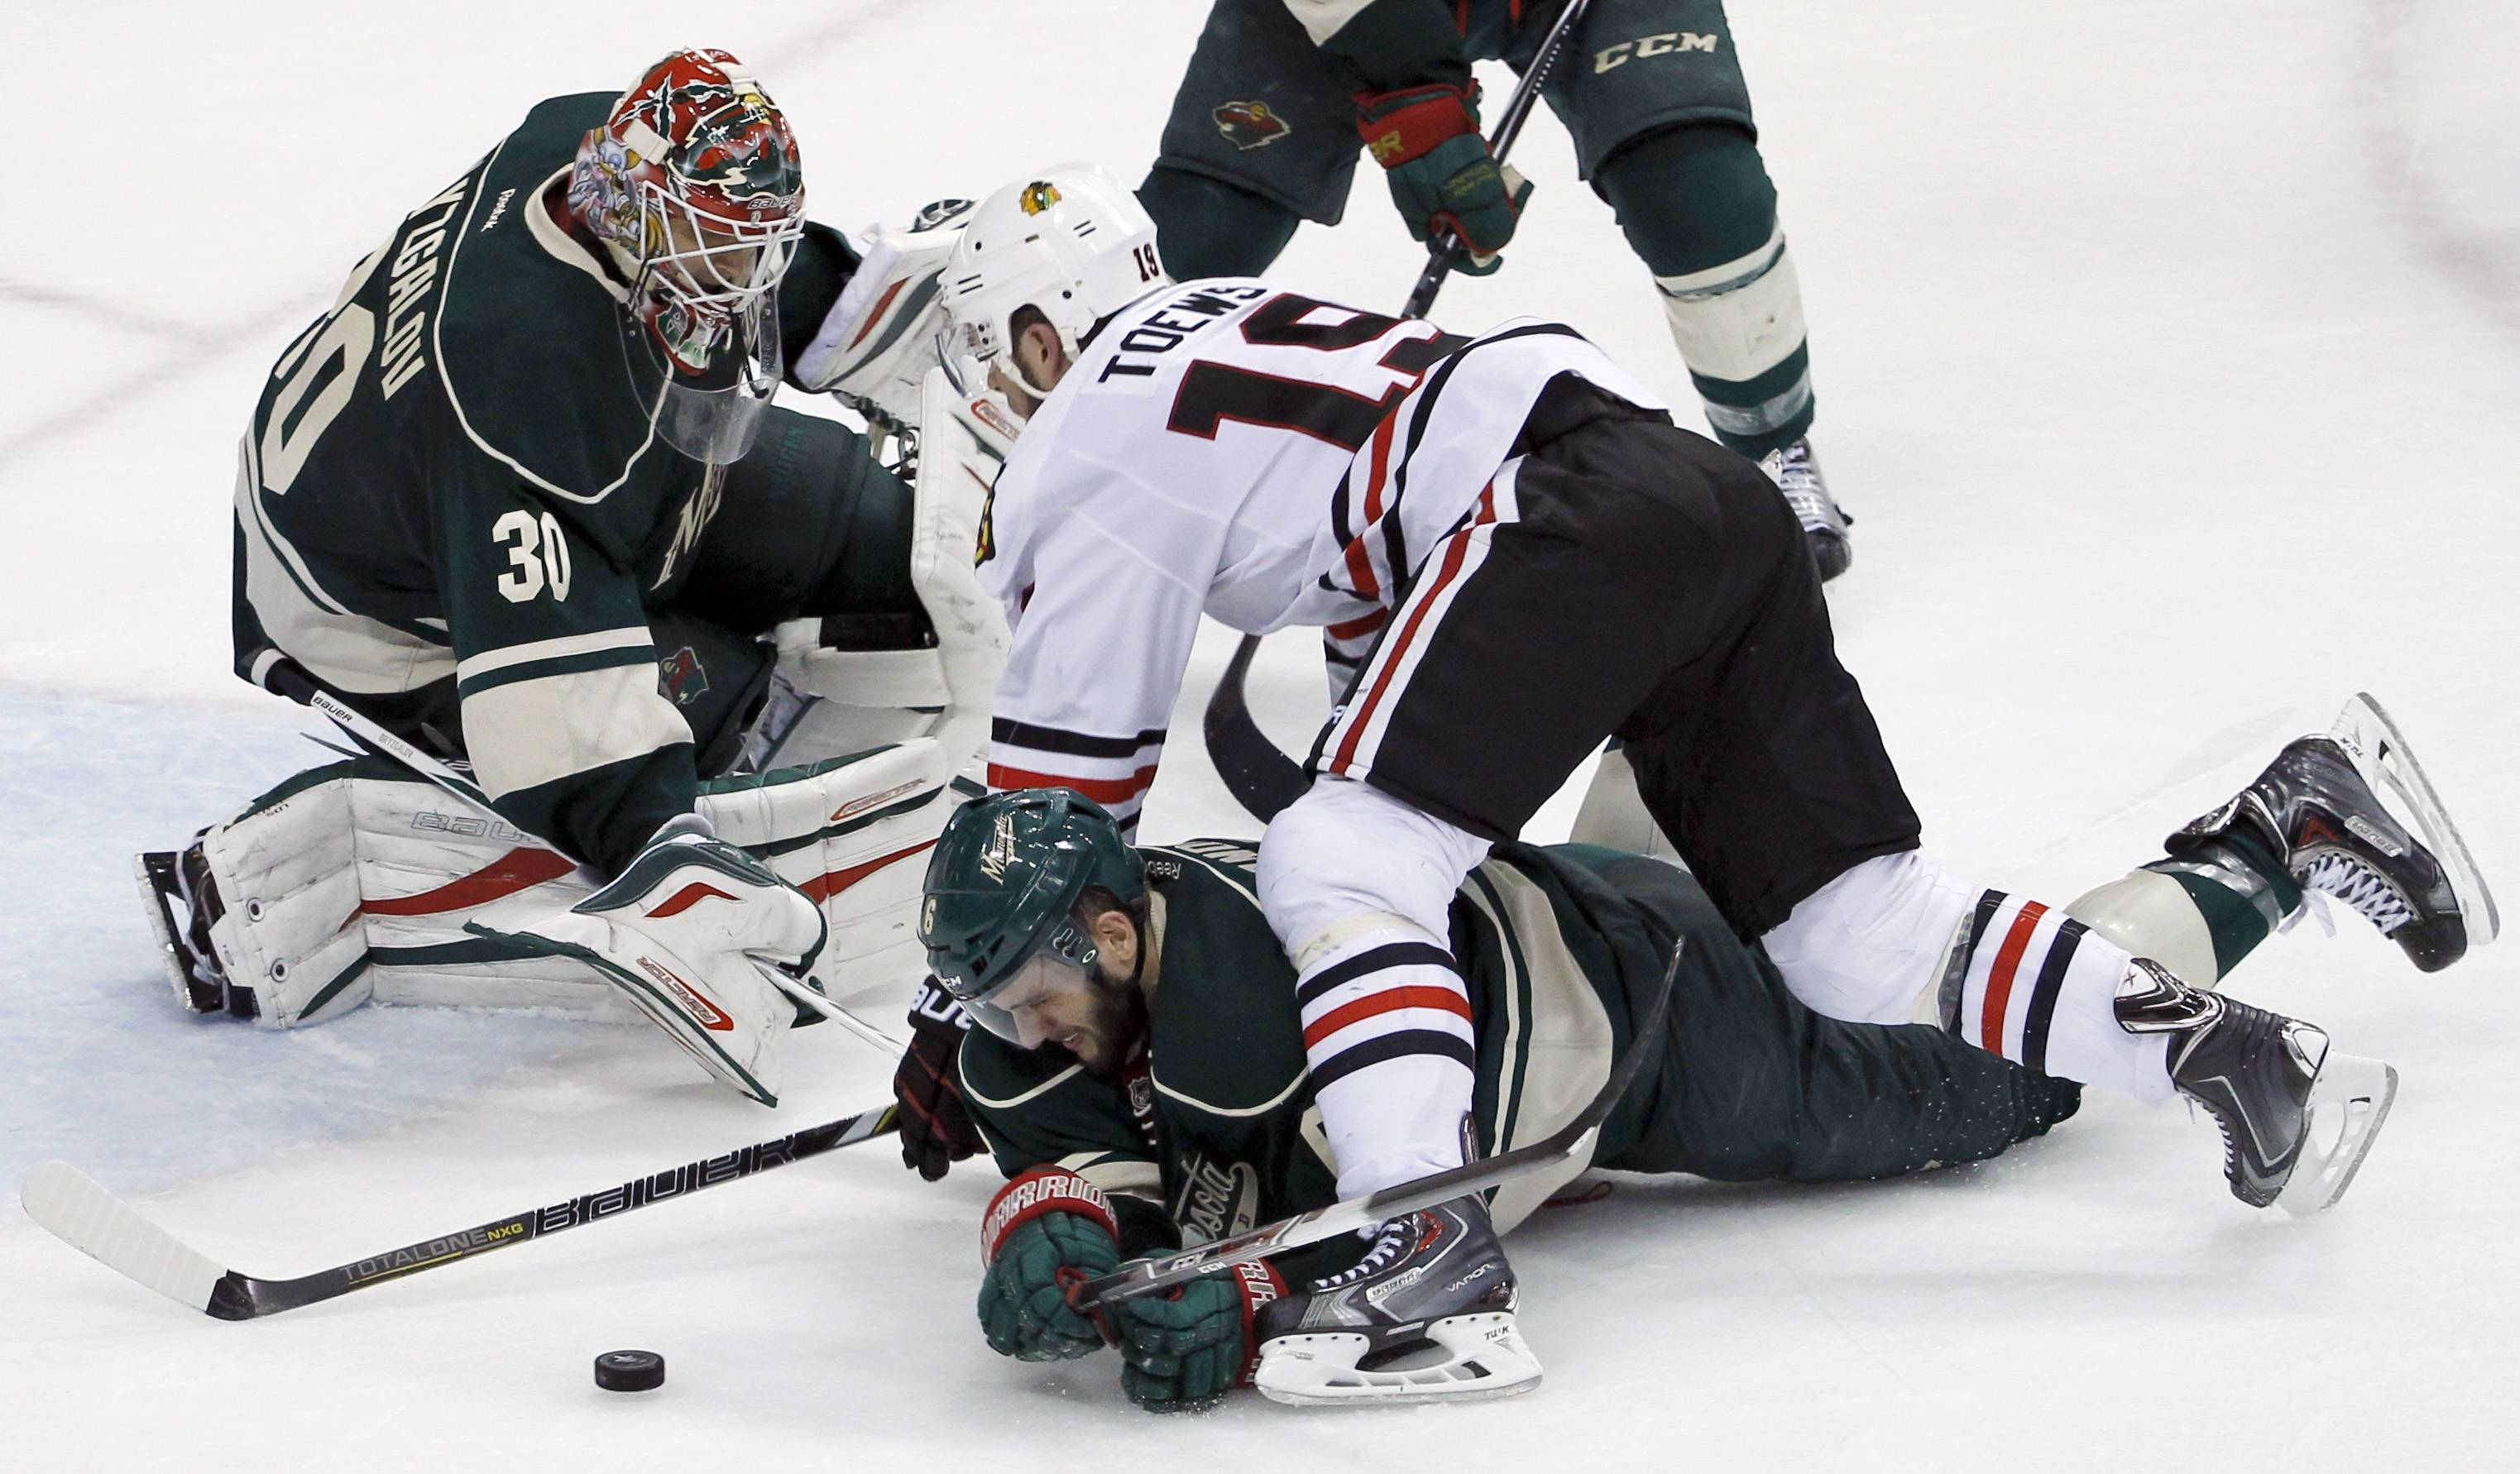 The Blackhawks lost 4-0 to the Minnesota Wild Tuesday night.